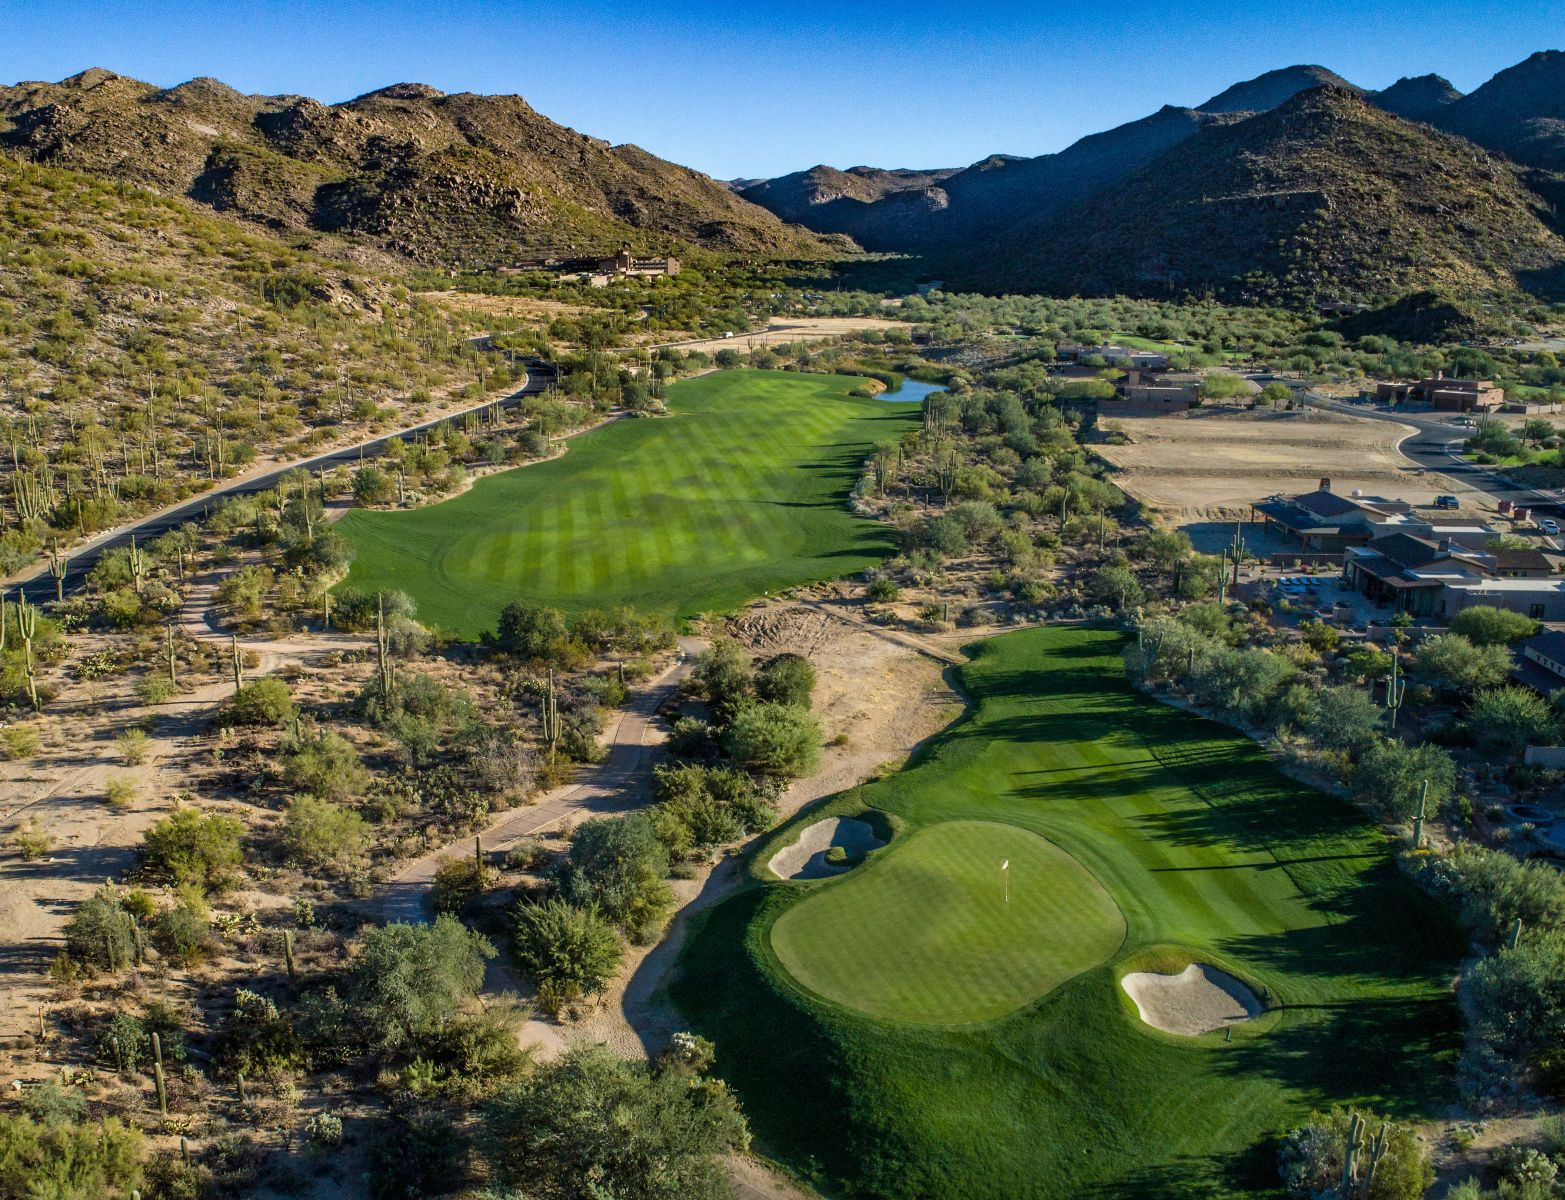 Aerial view of hole 6 on the Wild Burro course